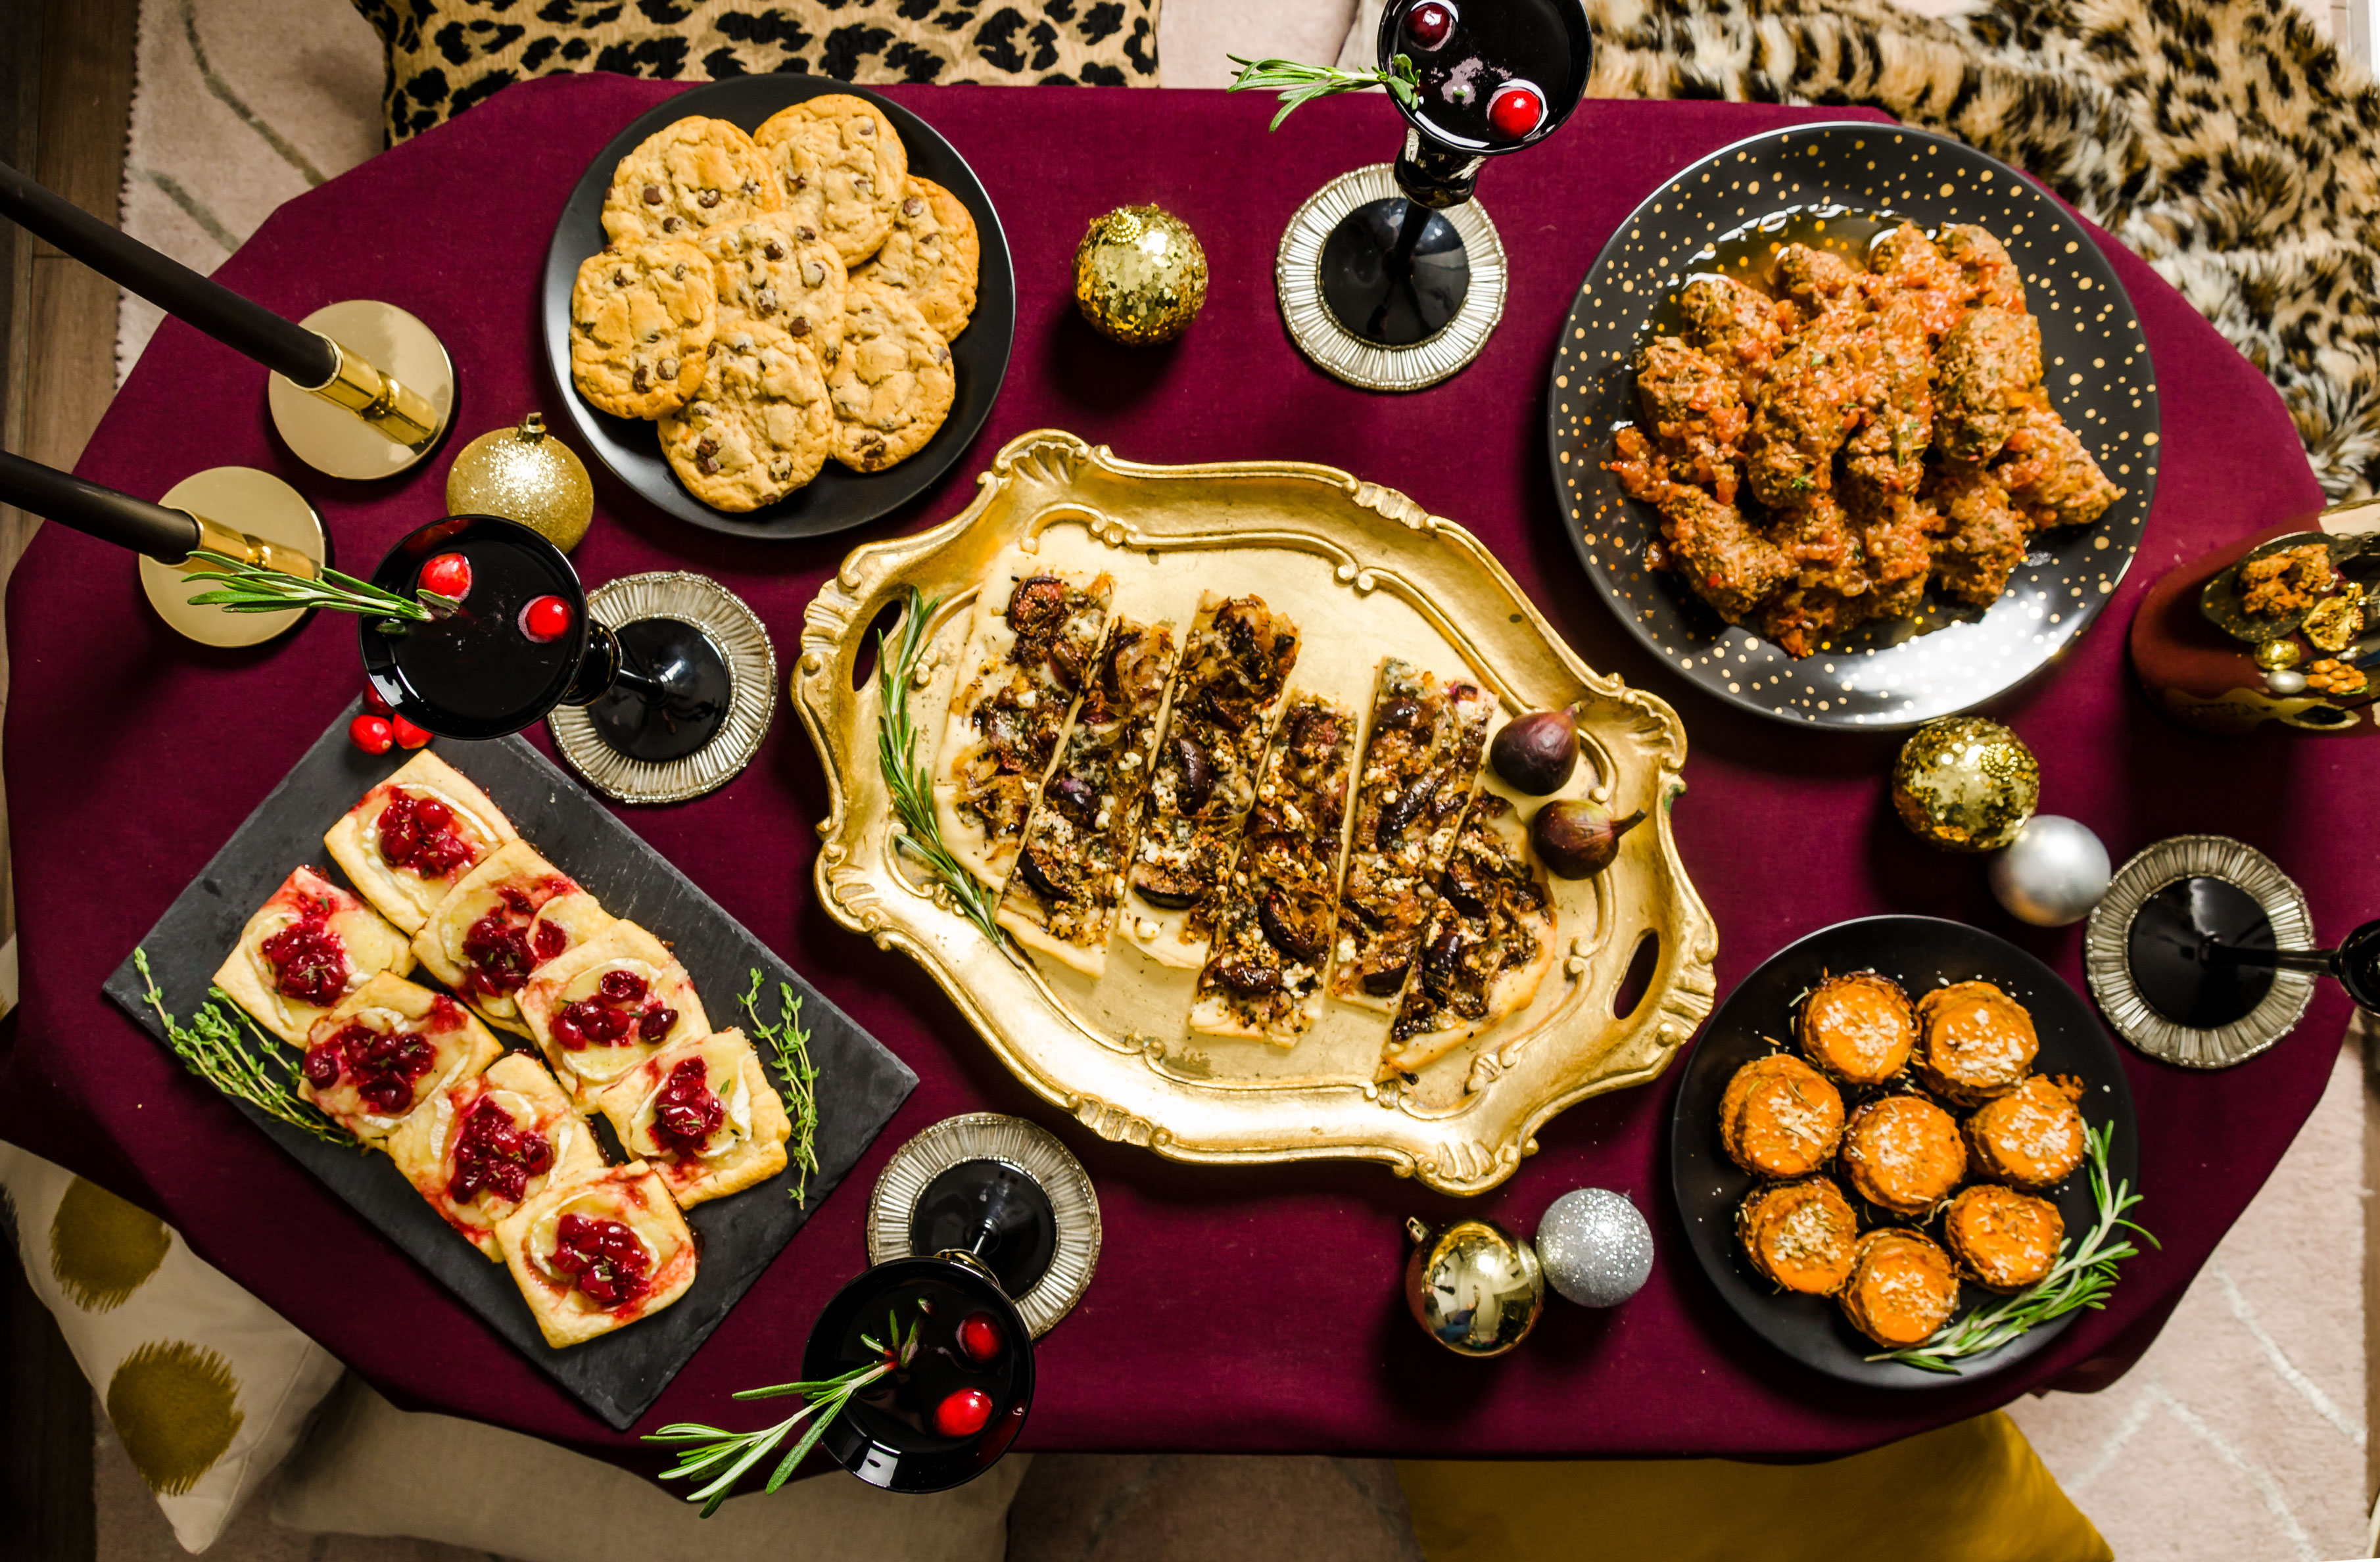 A holiday table designed for entertaining in smaller homes by sitting around the coffee table. Includes a holiday menu with bite sized edibles to save space and host guests with ease.